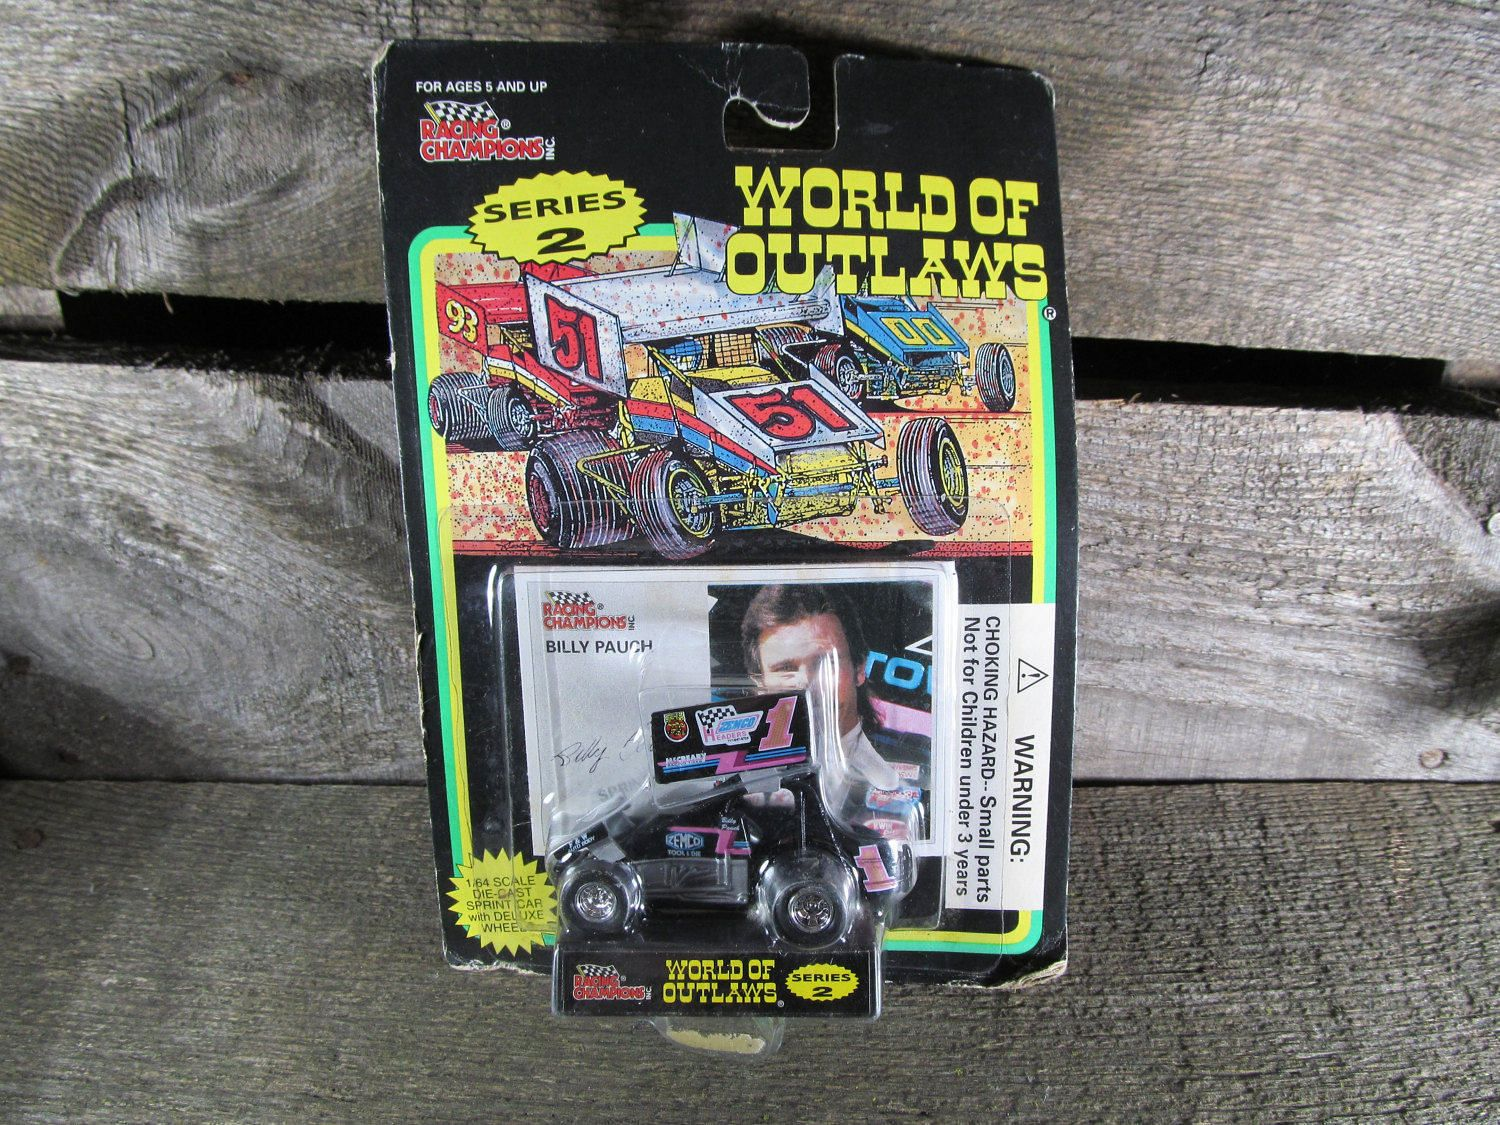 Billy Pauch #1, Racing Champions, World Of Outlaws, Sprint Cars 1994, 1/64 Scale Die Cast Model Car, Series 2, Collectible Toys by TheStorageChest on Etsy